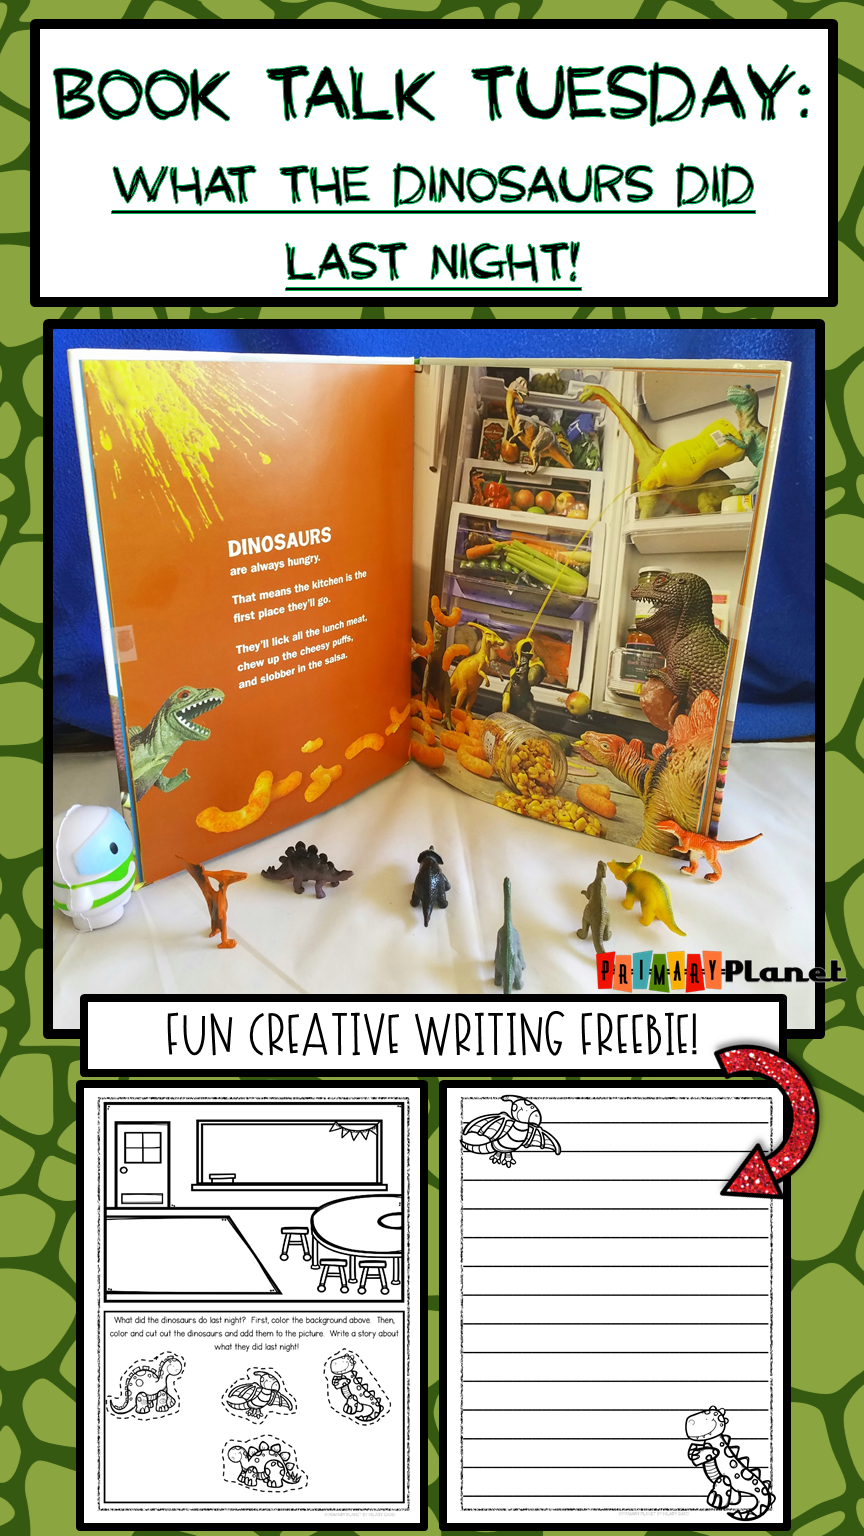 Fun text to spark creative writing with your students!  With a picture writing prompt freebie!